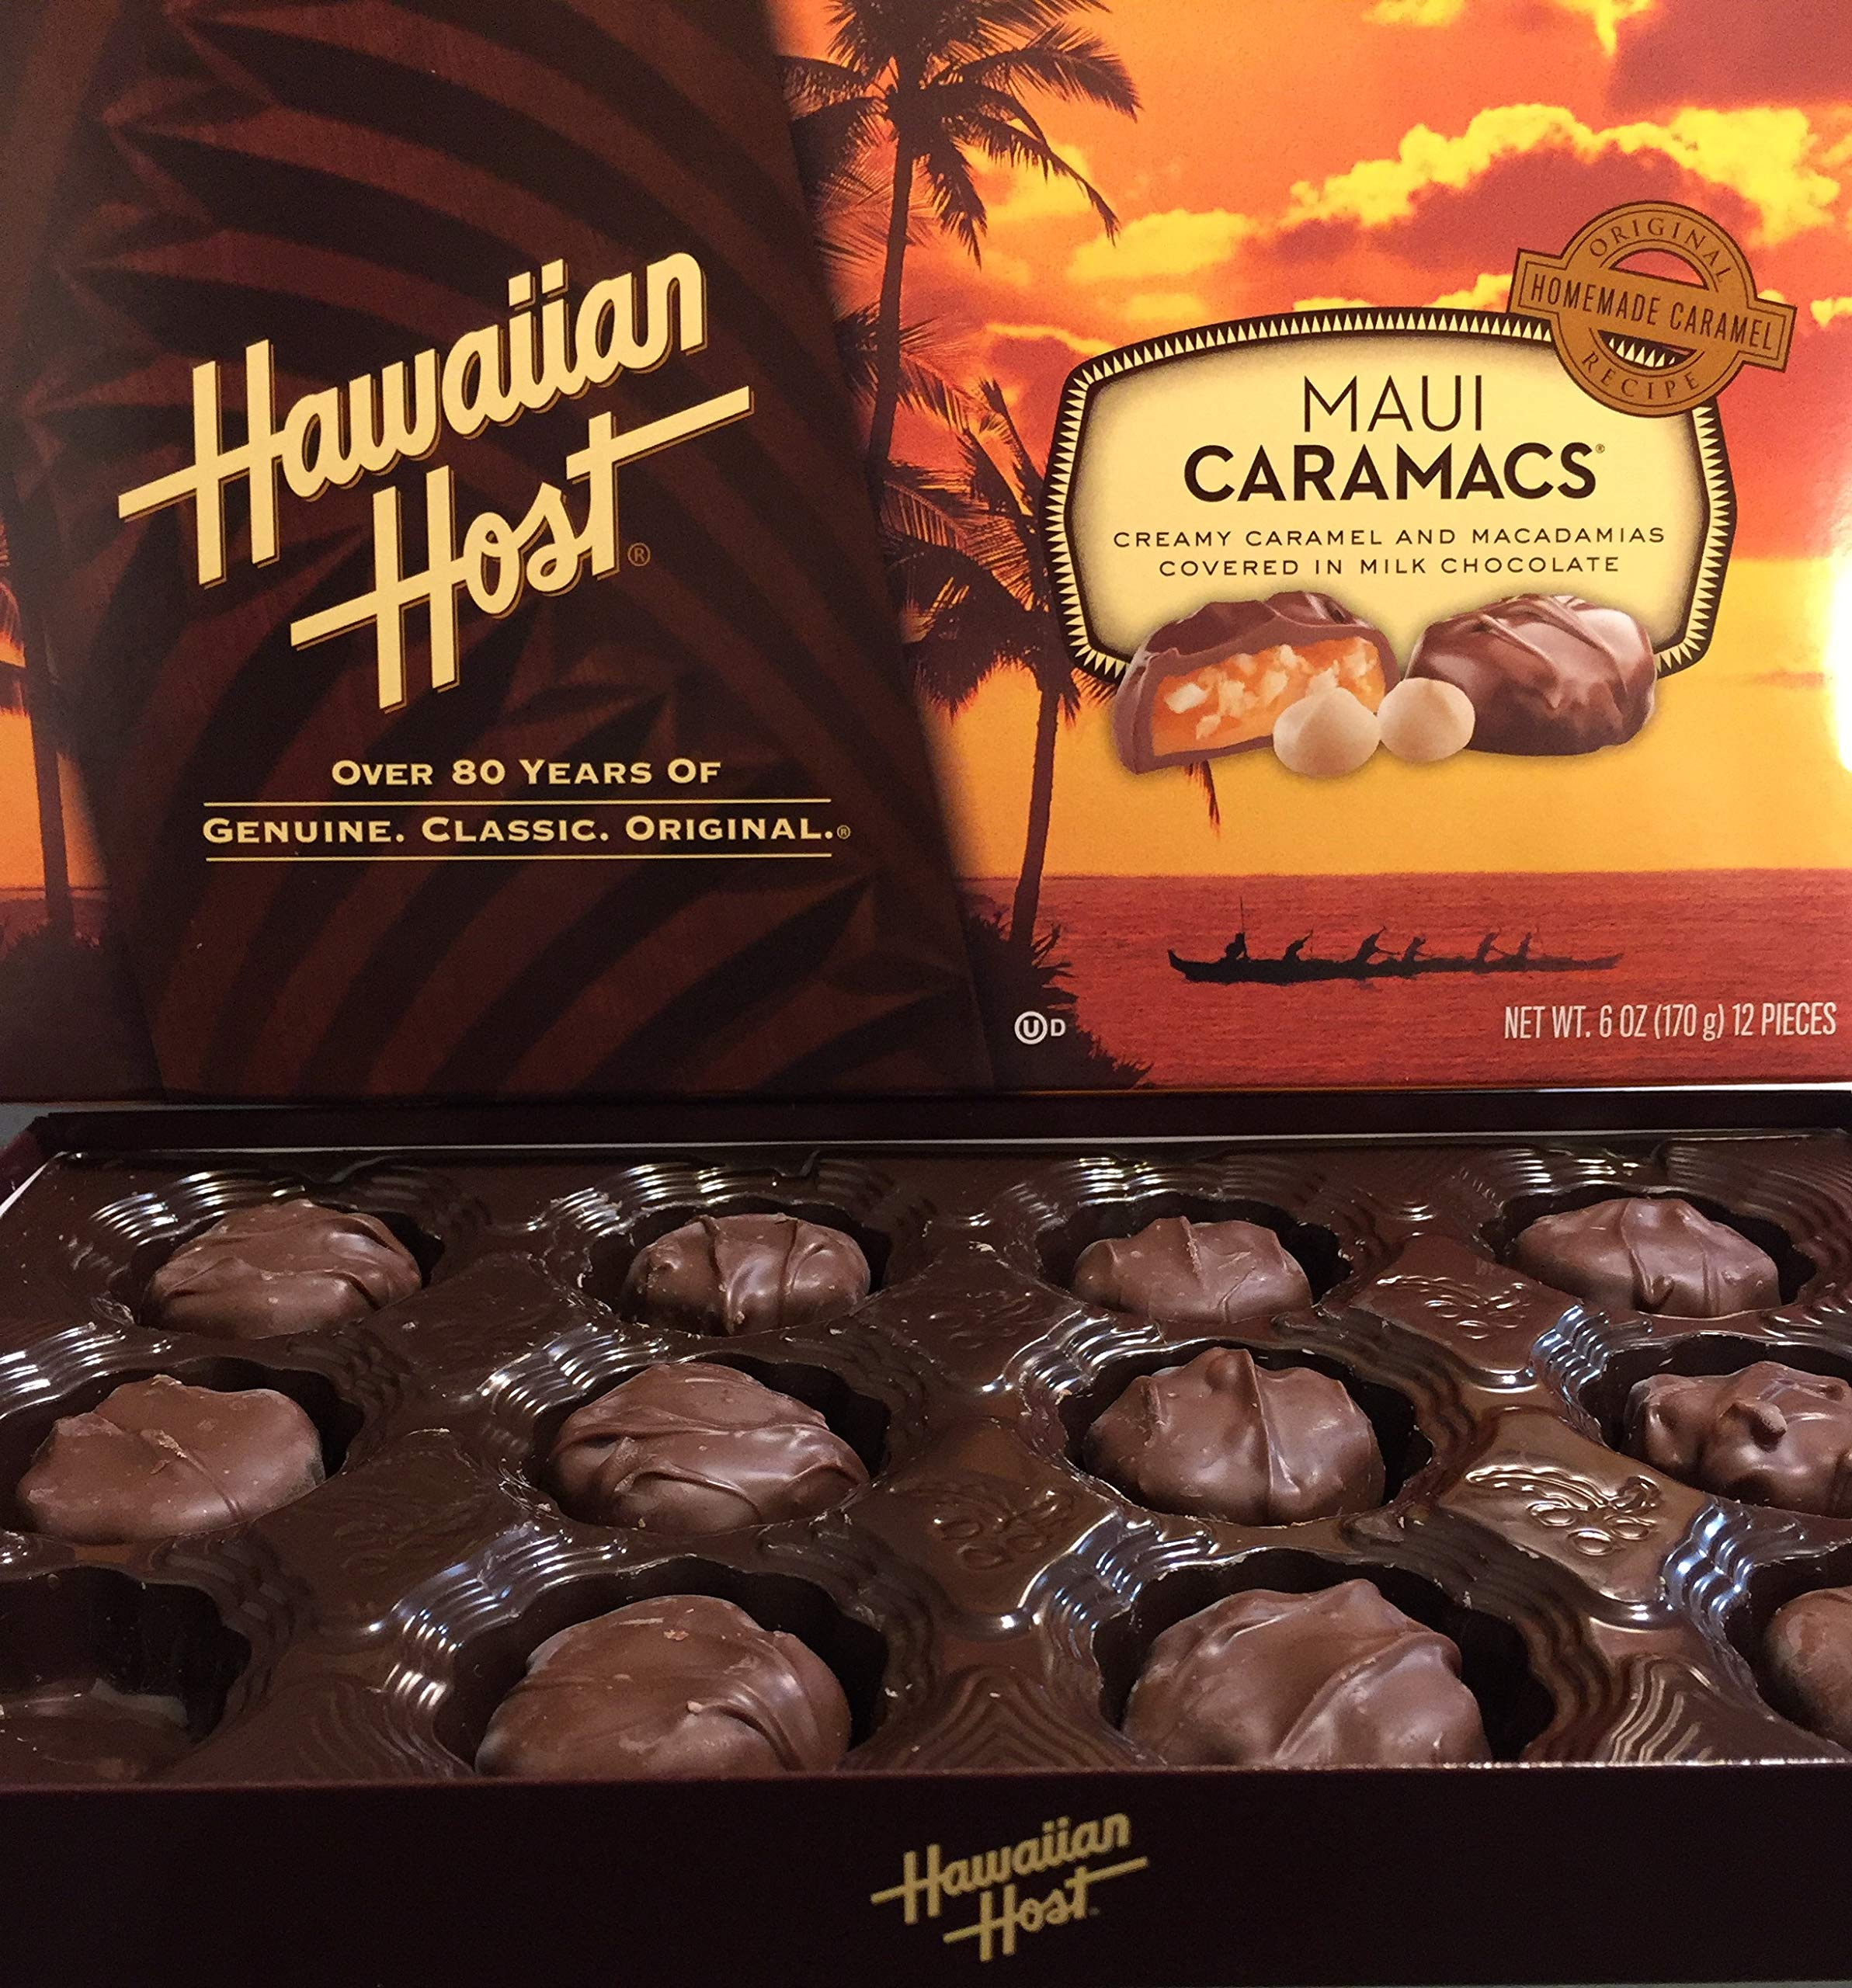 Hawaiian Host Value Pack Macadamia Nuts Maui Caramacs 3 Boxes by Hawaiian Host